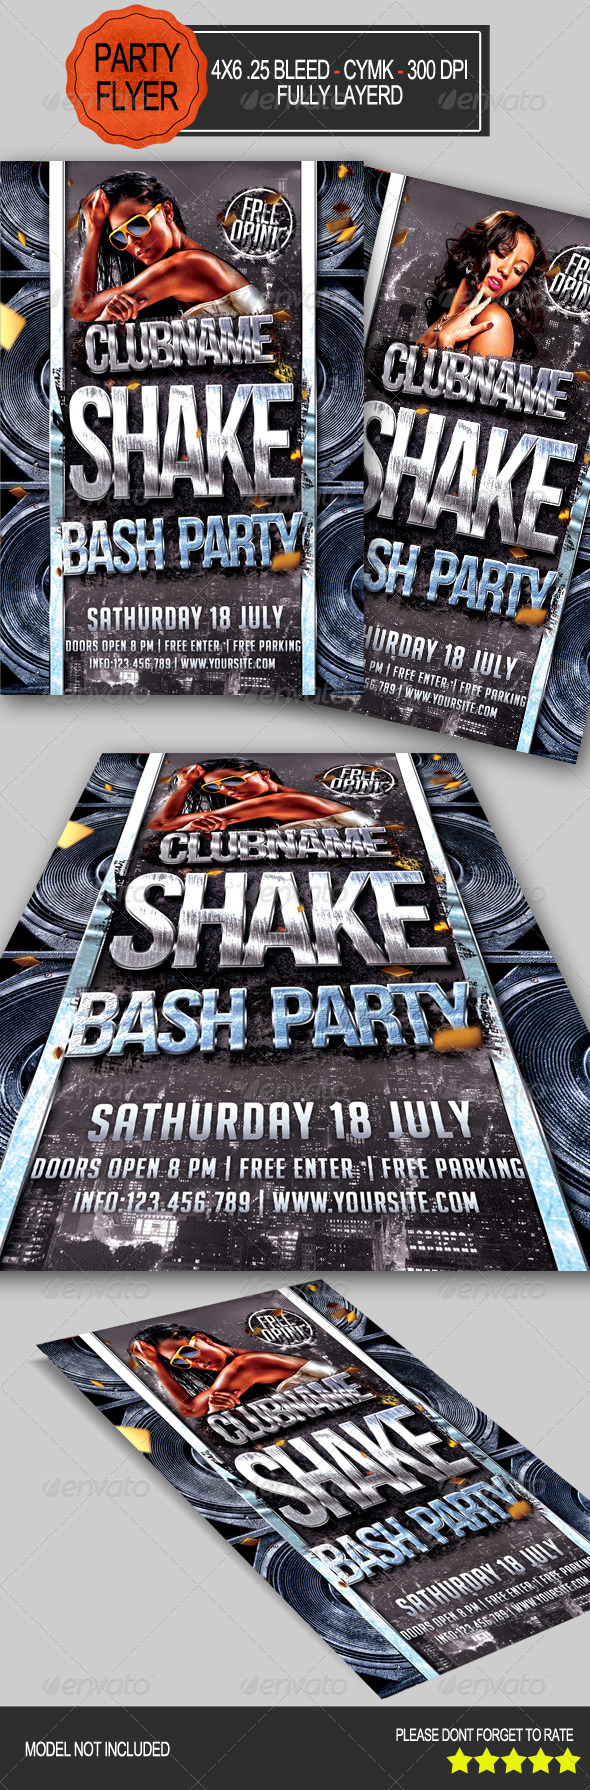 GraphicRiver Shake Bash Party Flyer 7718006